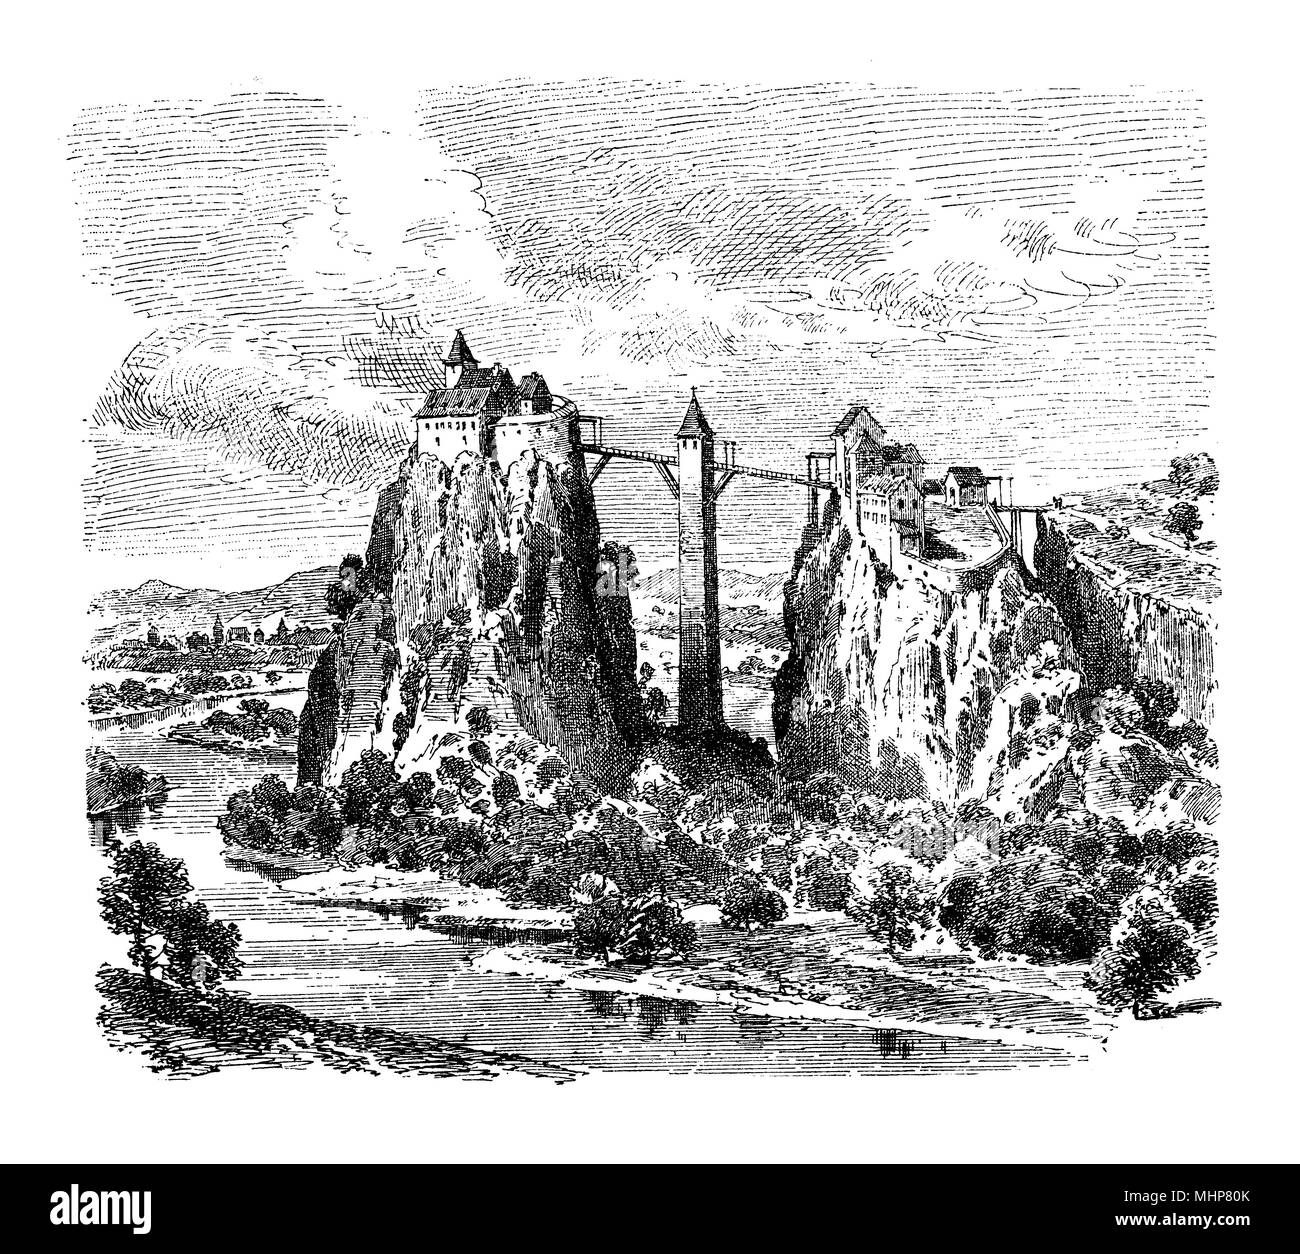 Germany, vintage engraving of Wildenstein castle on Danube river, built as fortress in XII-XIII century - Stock Image